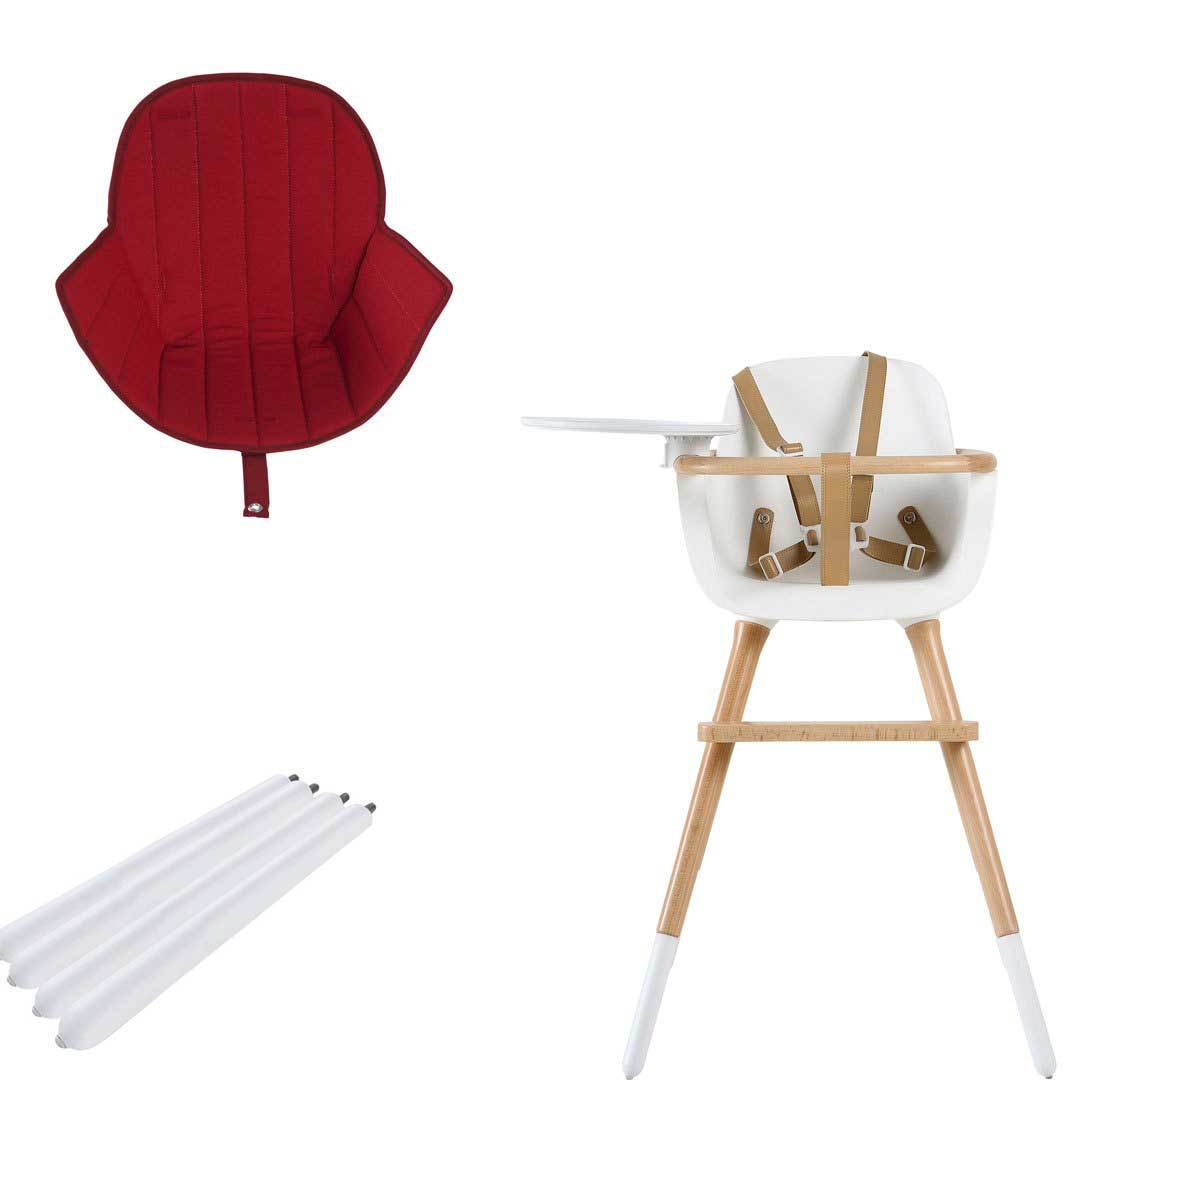 micuna chaise haute ovo luxe one assise rouge et extension blanc chaise haute micuna sur l. Black Bedroom Furniture Sets. Home Design Ideas